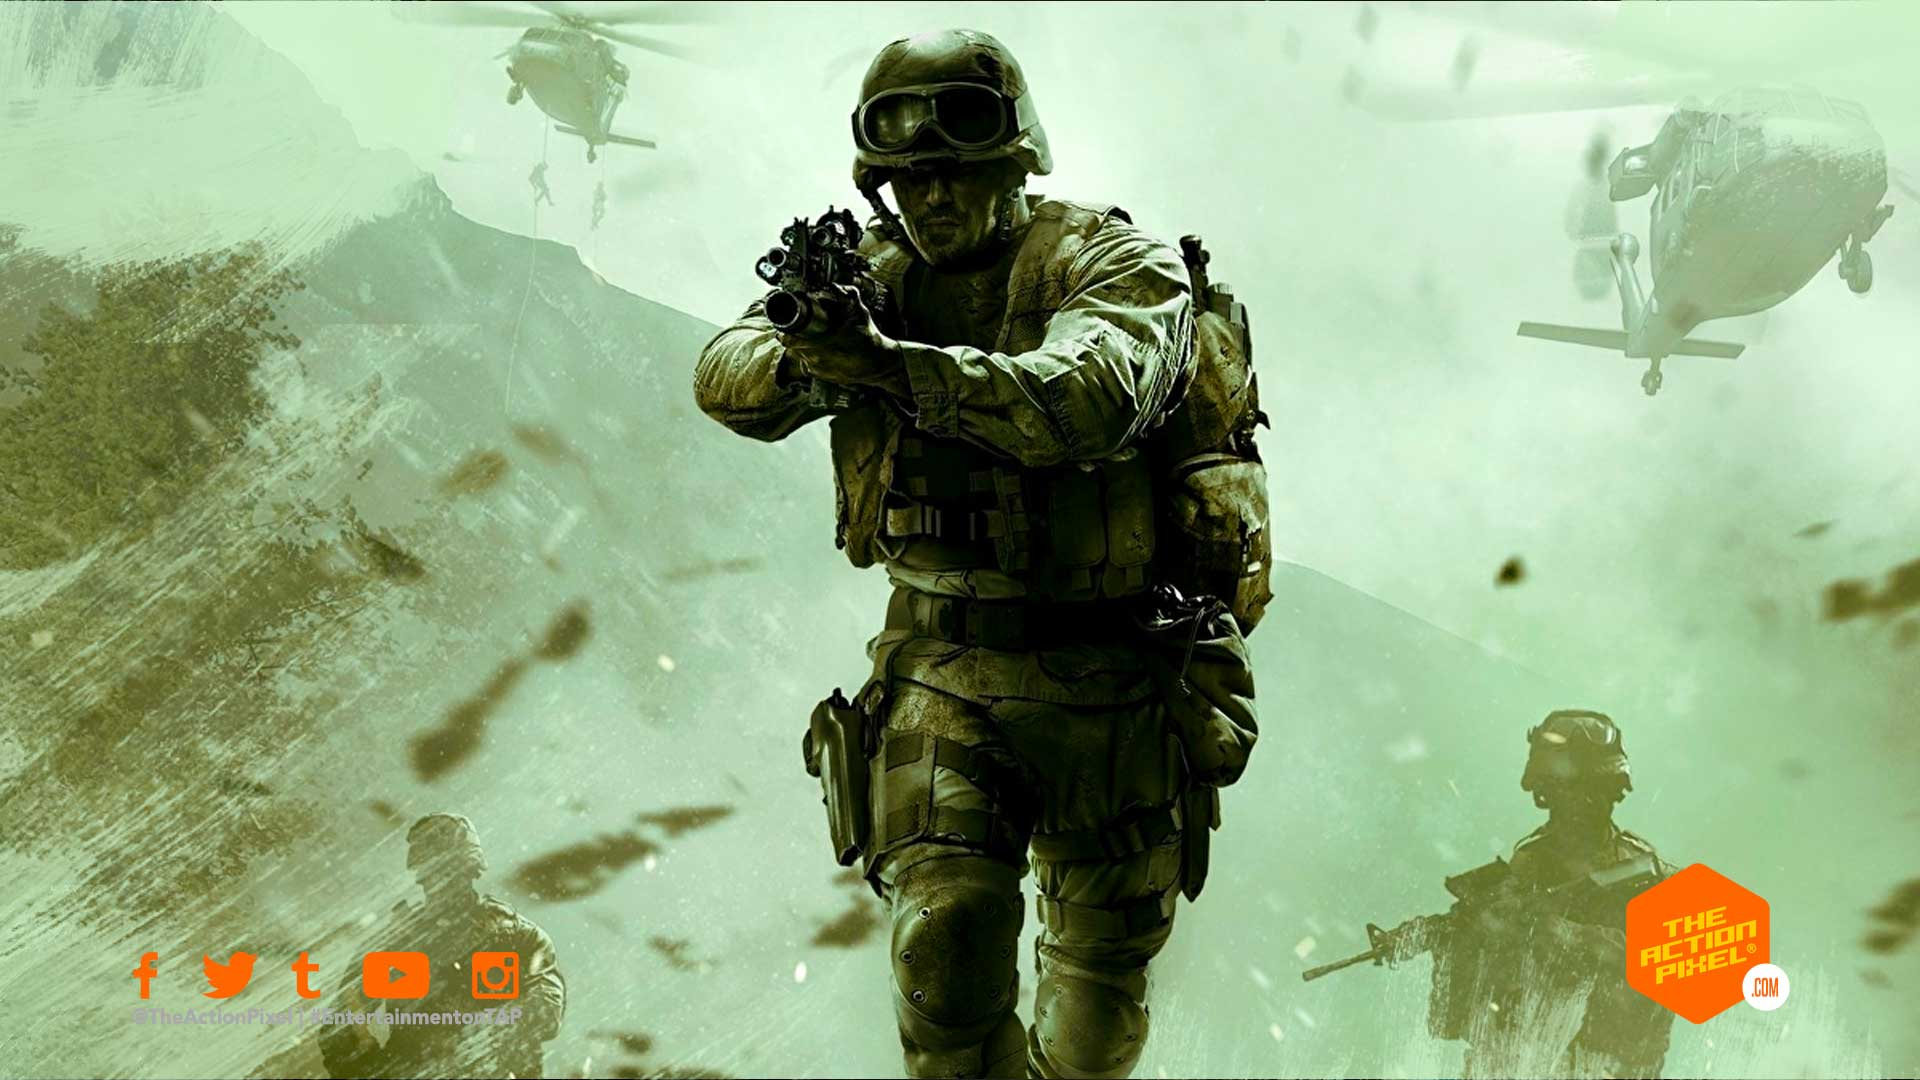 call of duty 2021, cod 2021, call of duty, activision, cod game 2021, the action pixel, treyarch, sledgehammer, featured,the action pixel,